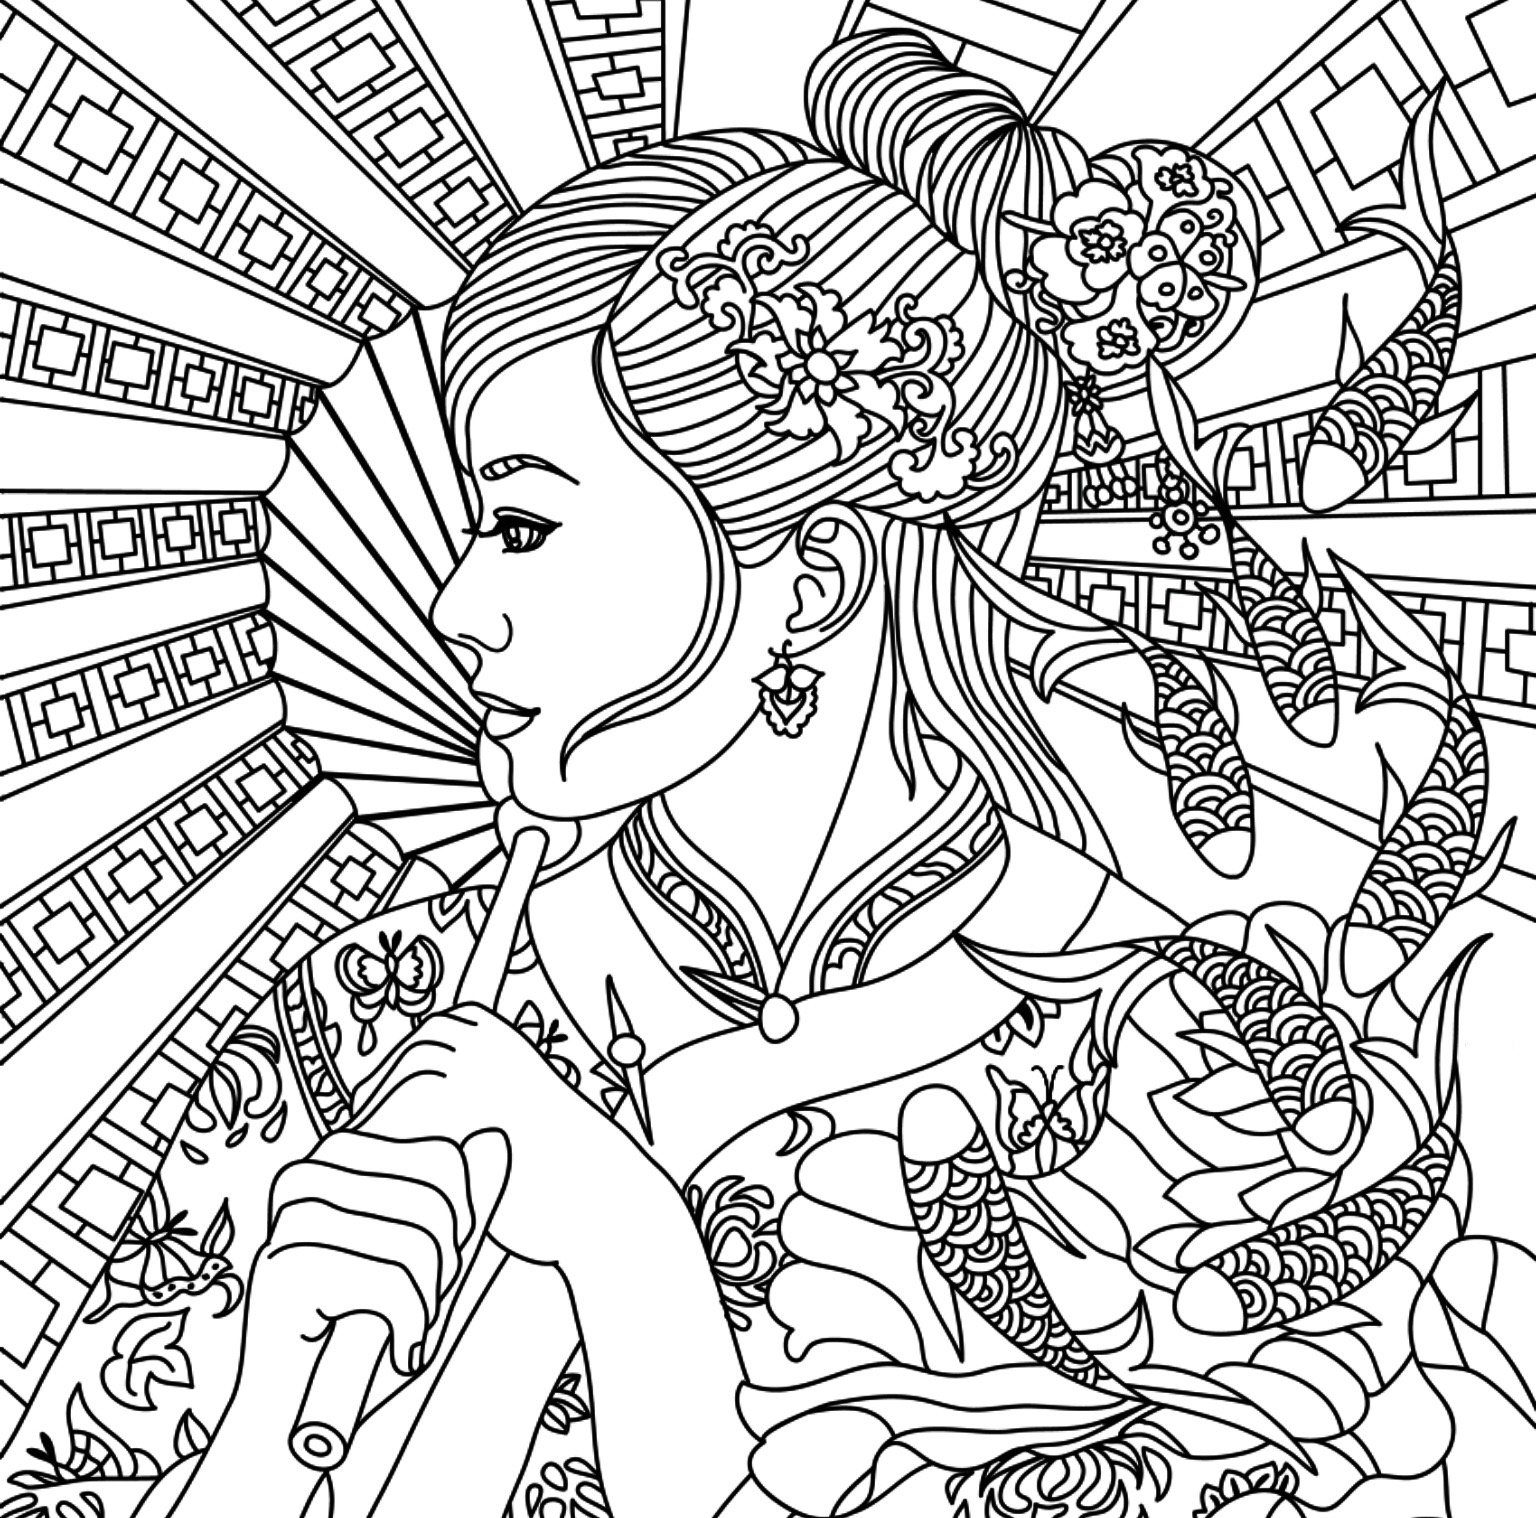 1536x1518 Cool Under The Sea Coloring Pages Free Coloring Pages Download